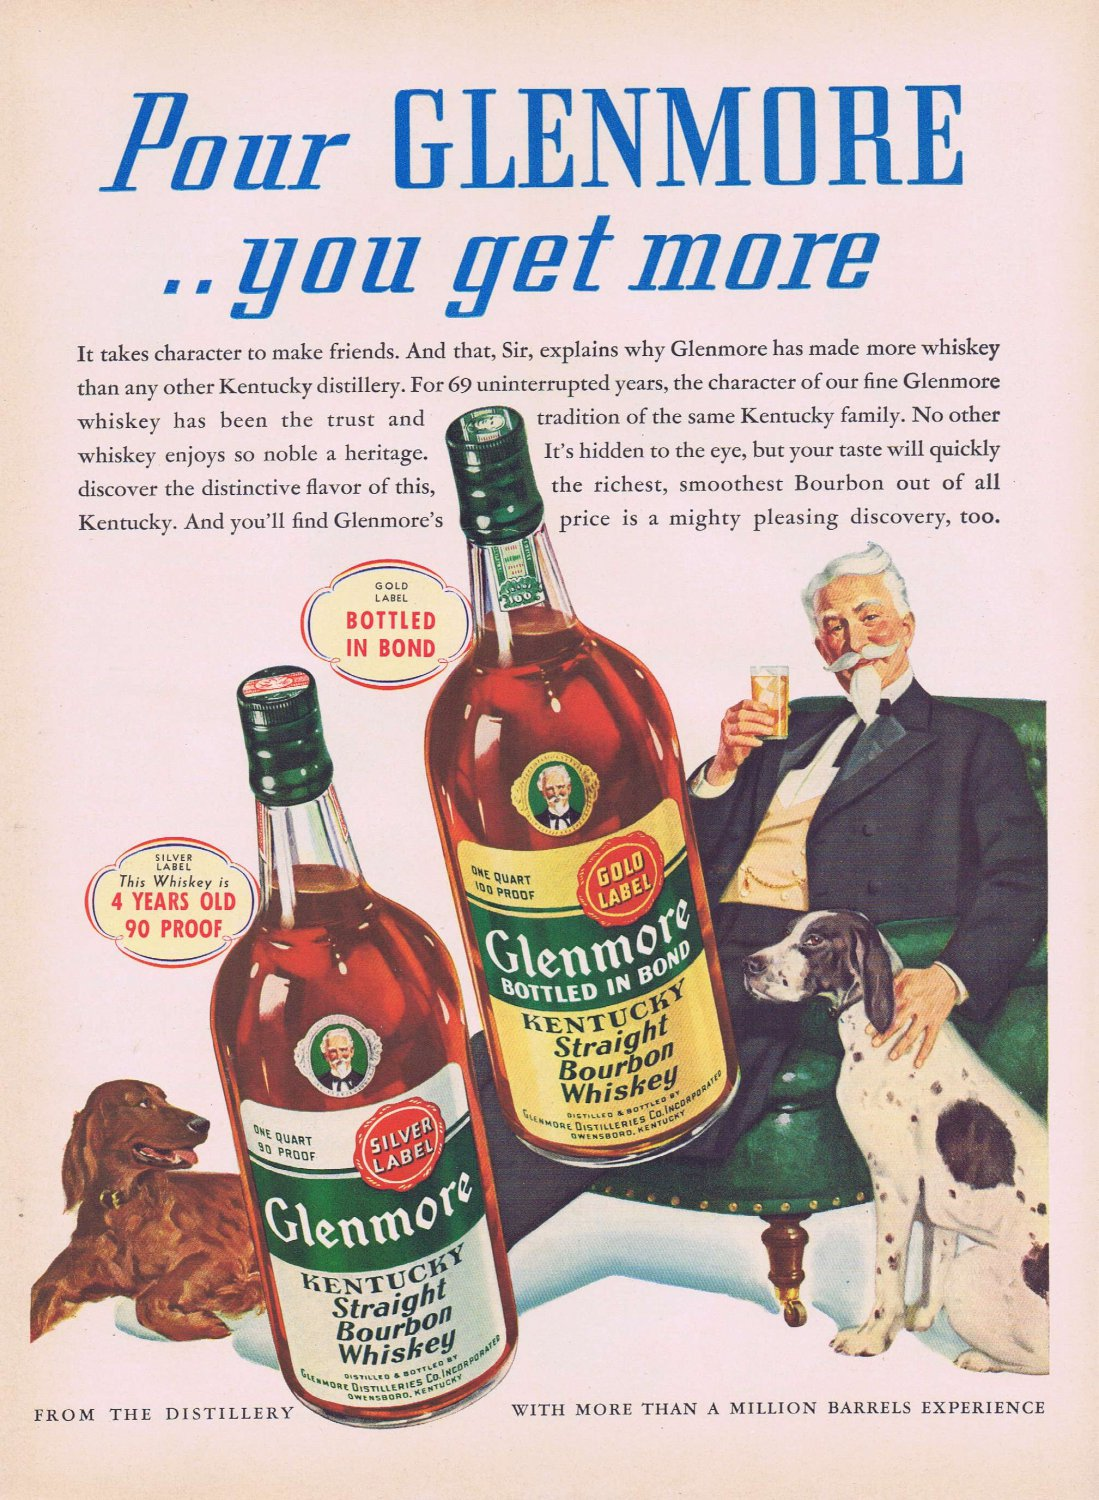 1941 Glenmore Kentucky Straight Bourbon Whiskey Original Vintage Ad with Man Enjoying Dogs